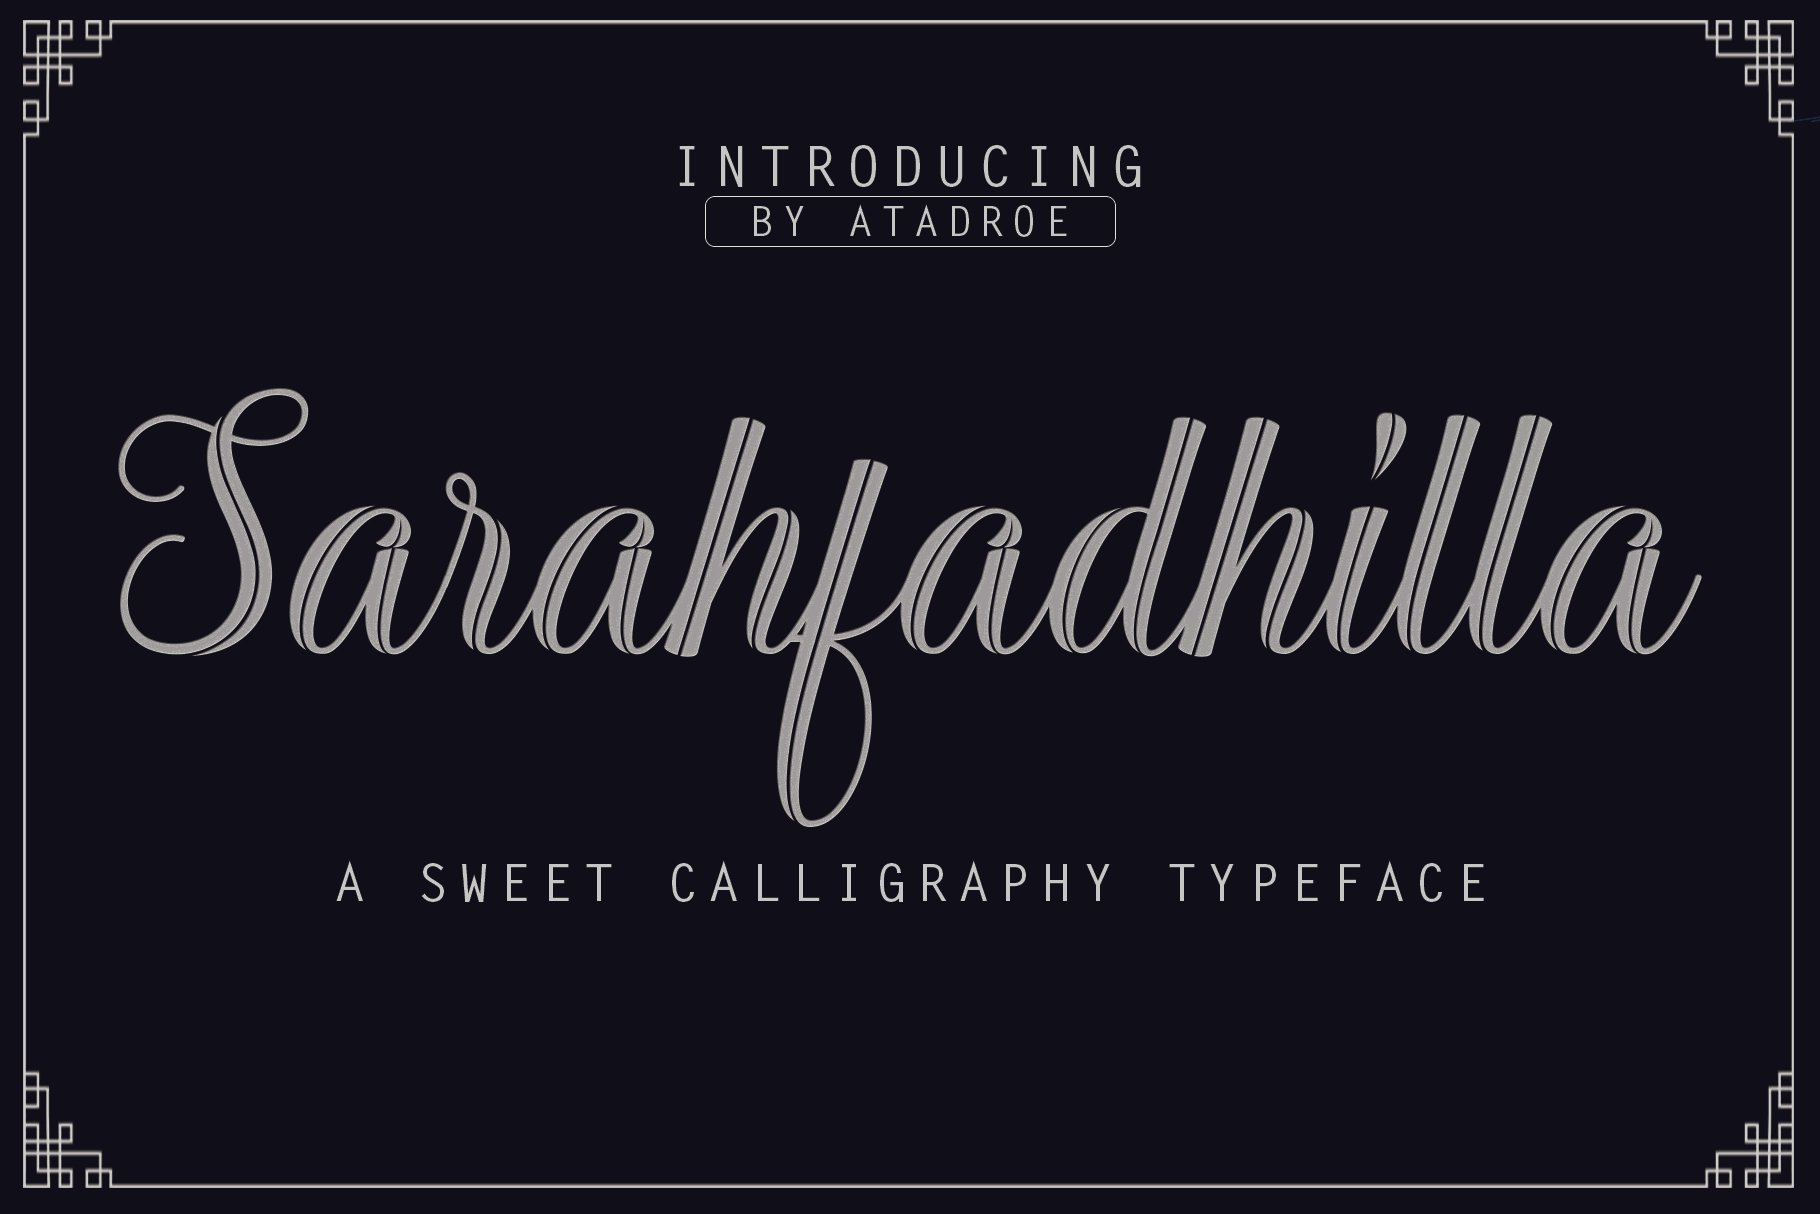 12 graceful charming fonts example image 10